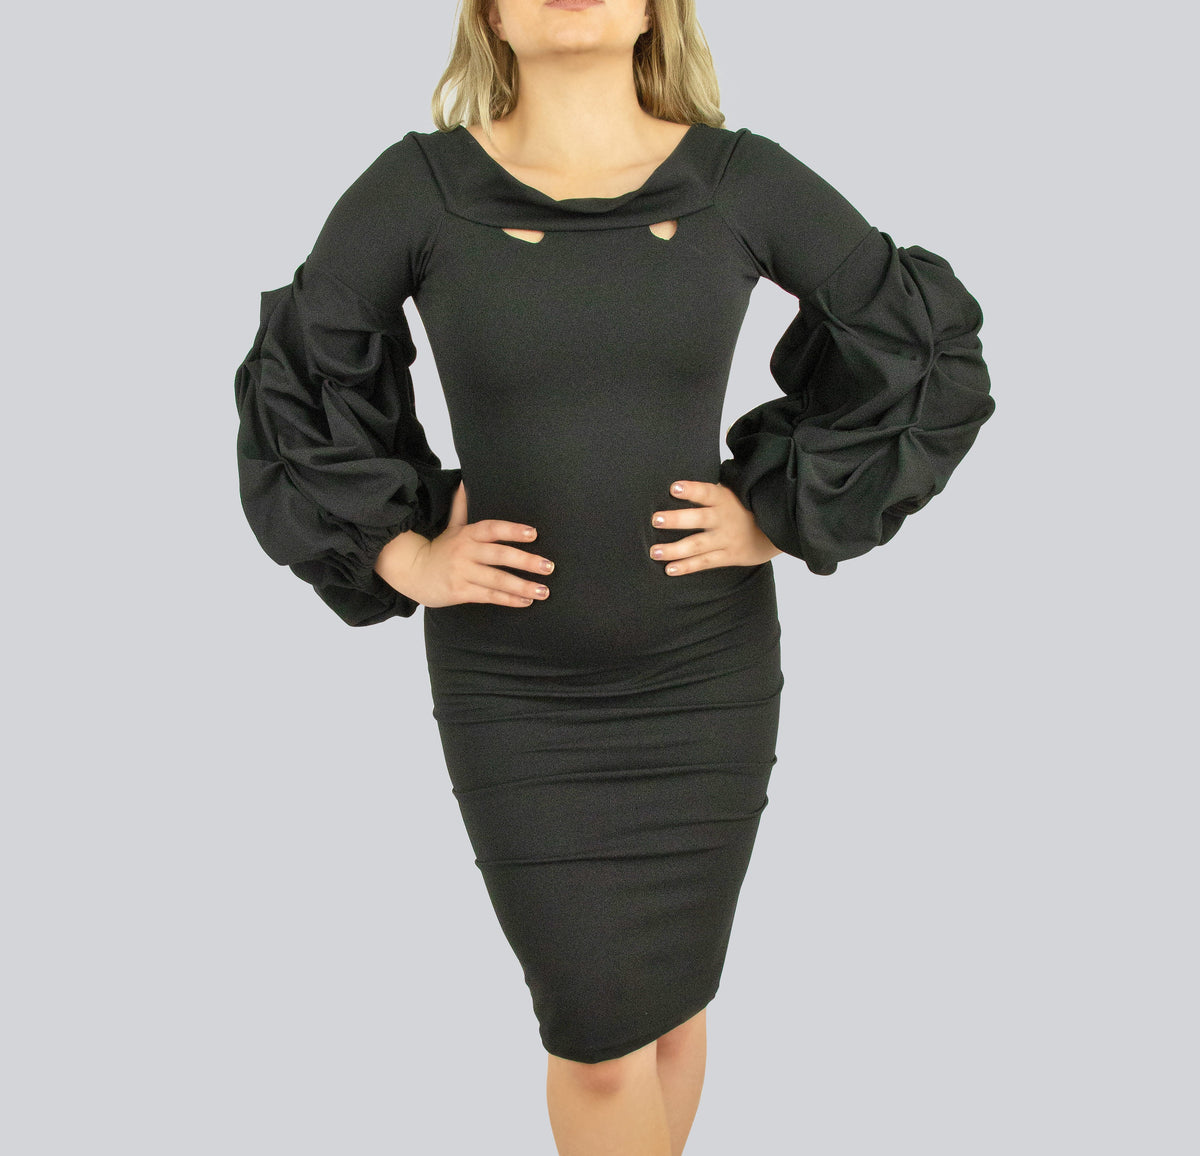 fa97eb29a22 Black dress with Puff exaggerated sleeves by Smart Marché – Gear and thread